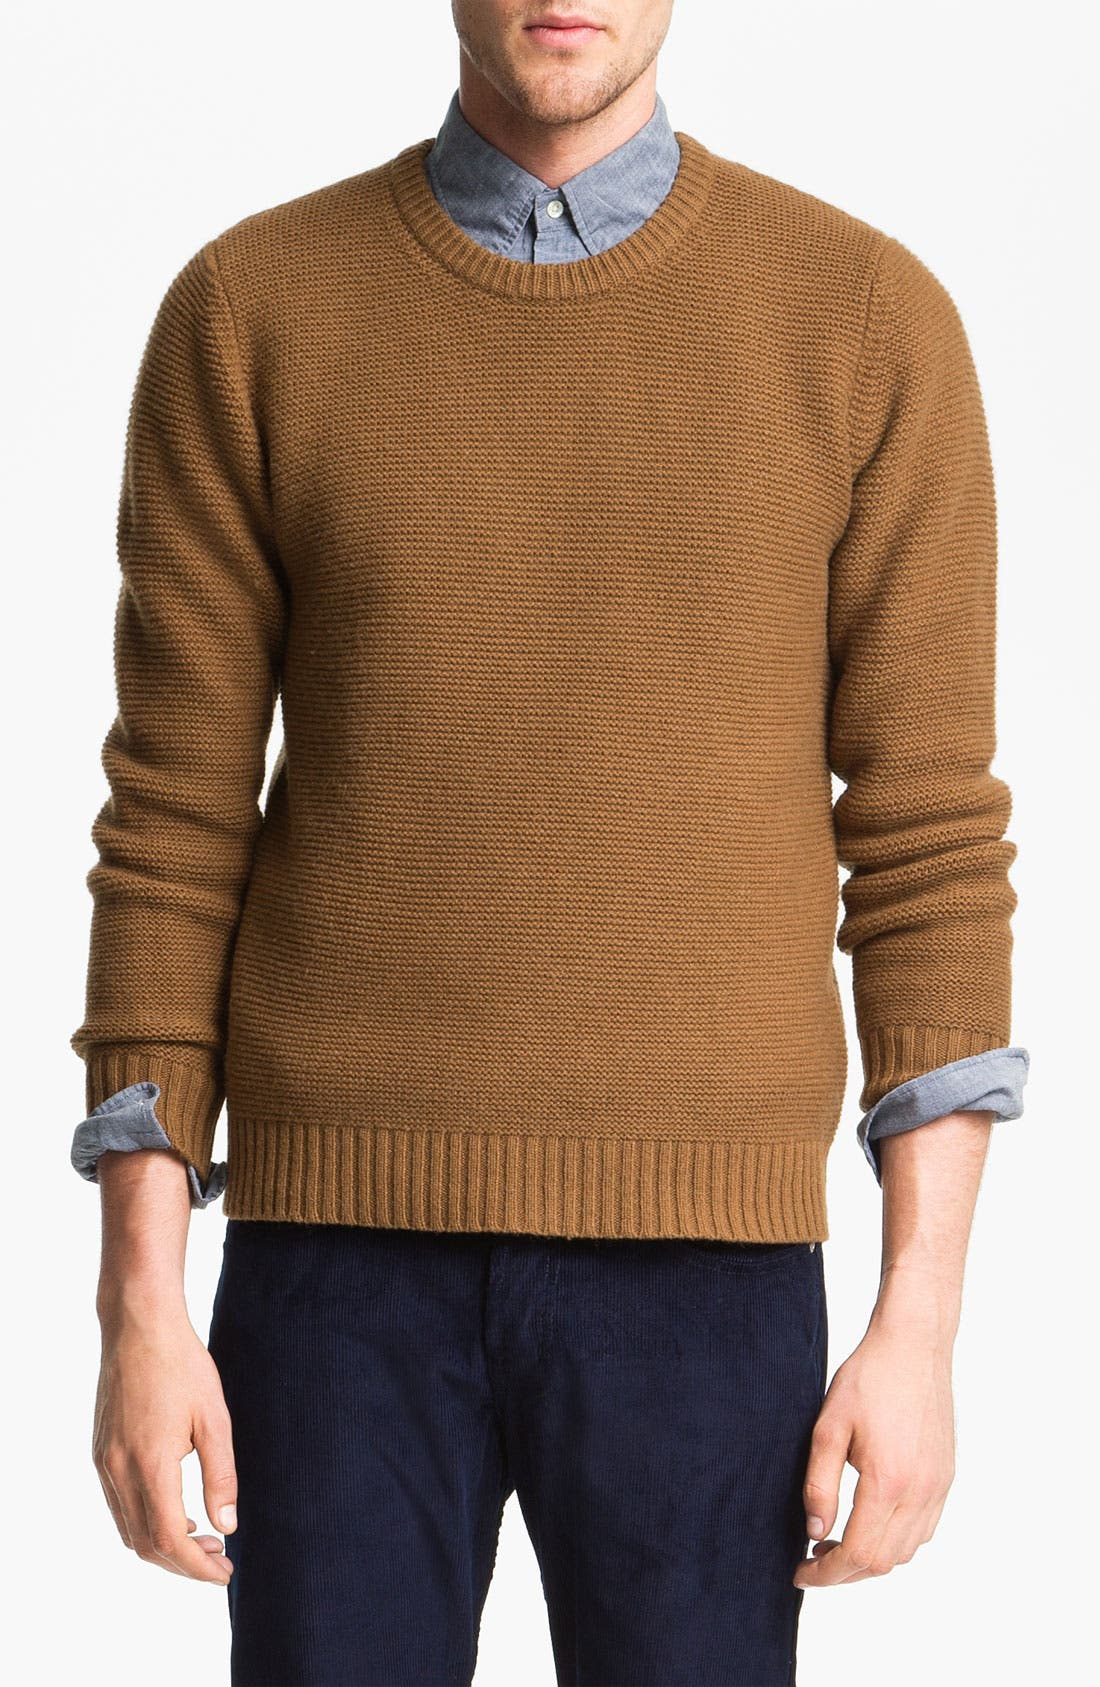 Main Image - Gant Rugger Crochet Knit Lambswool Sweater